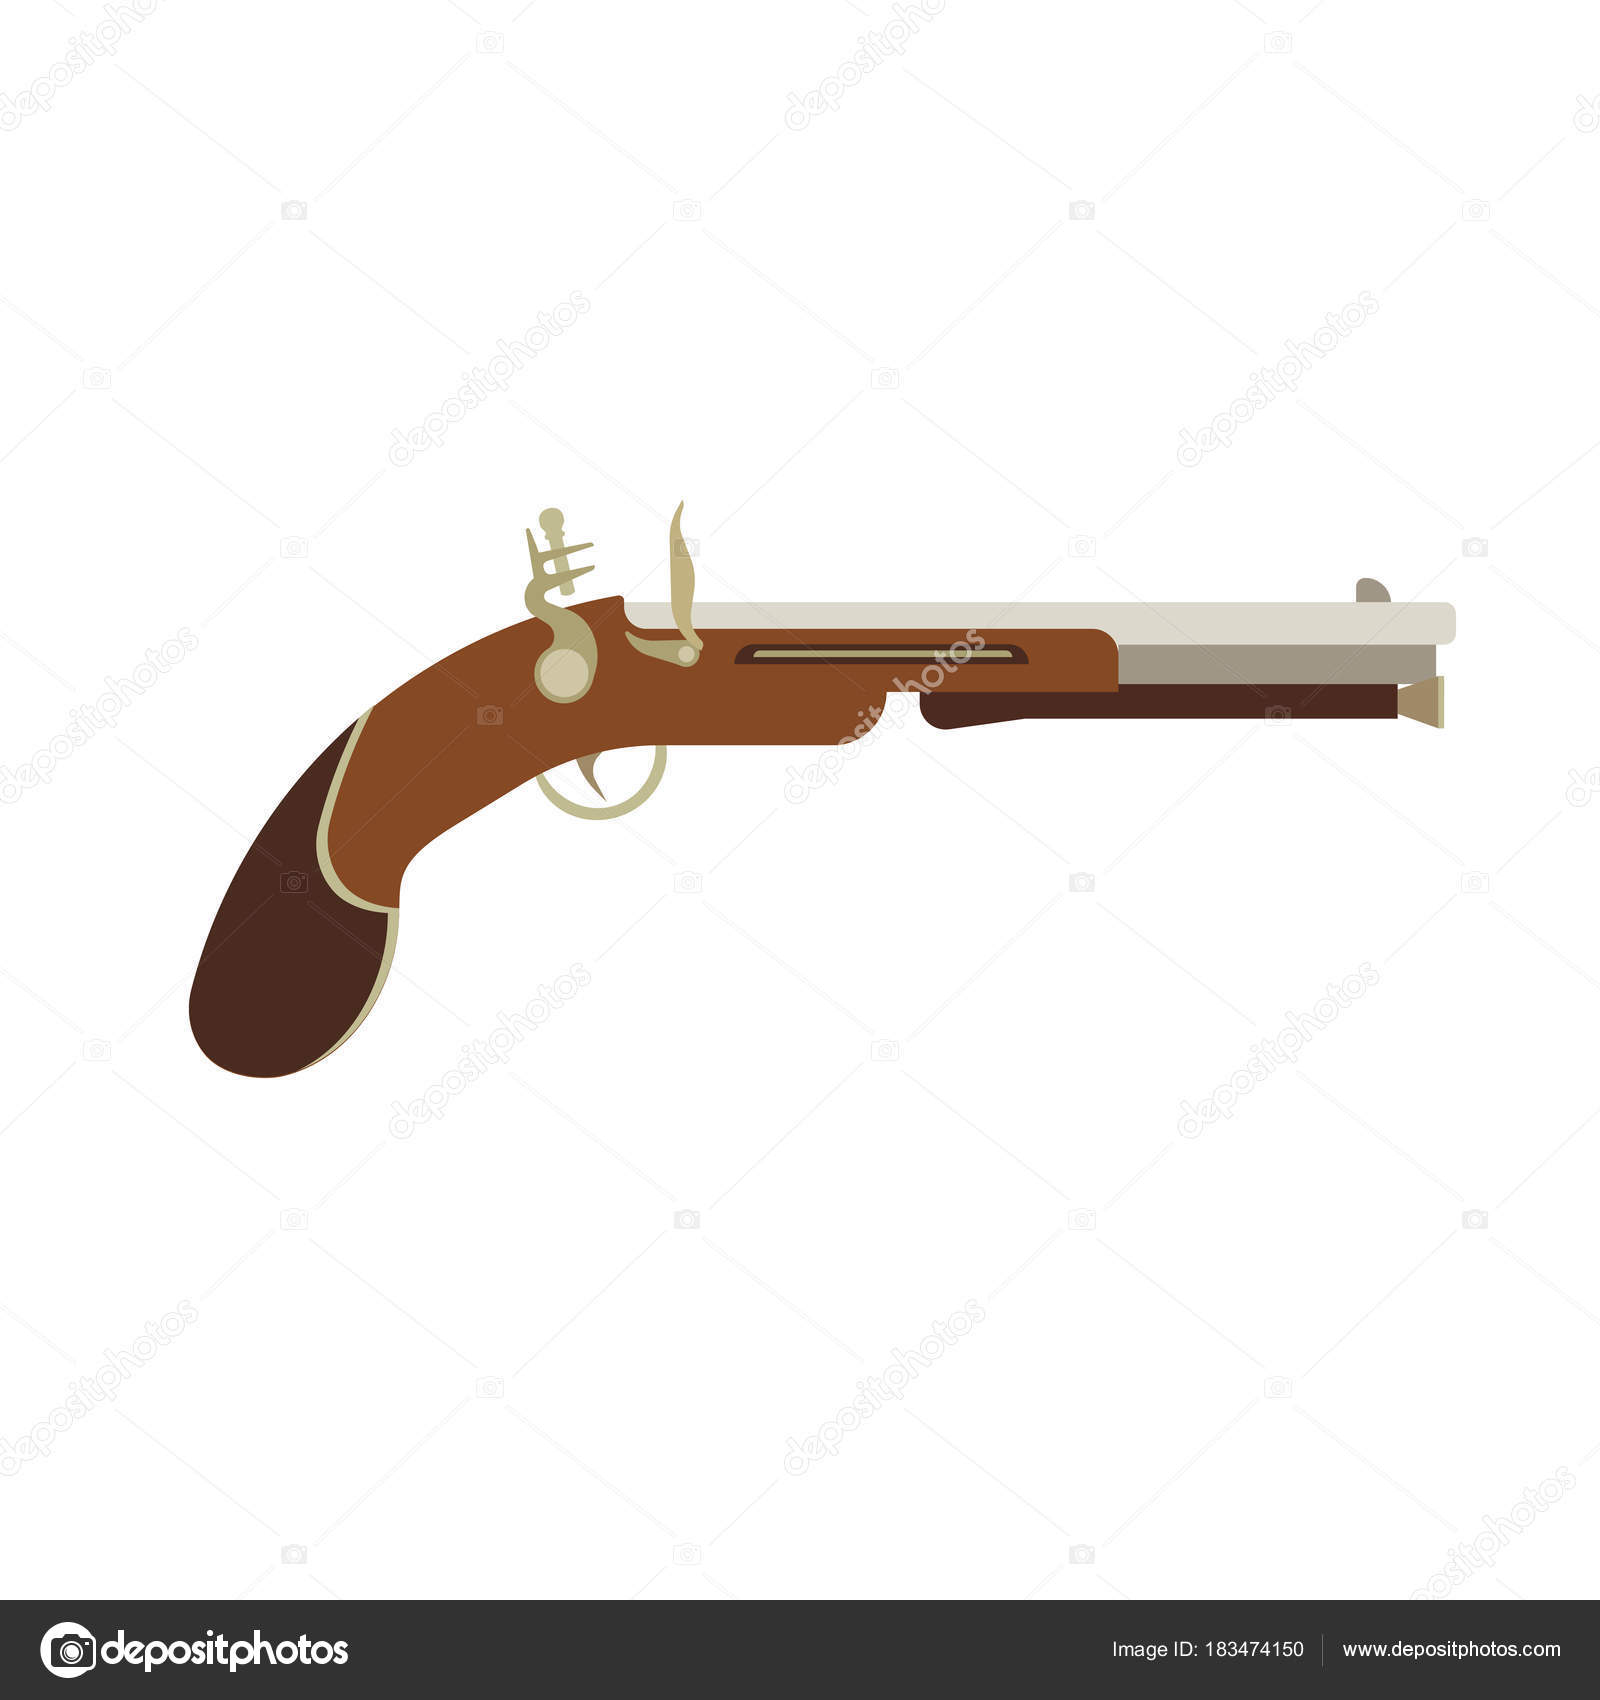 how old does a gun have to be to be considered an antique